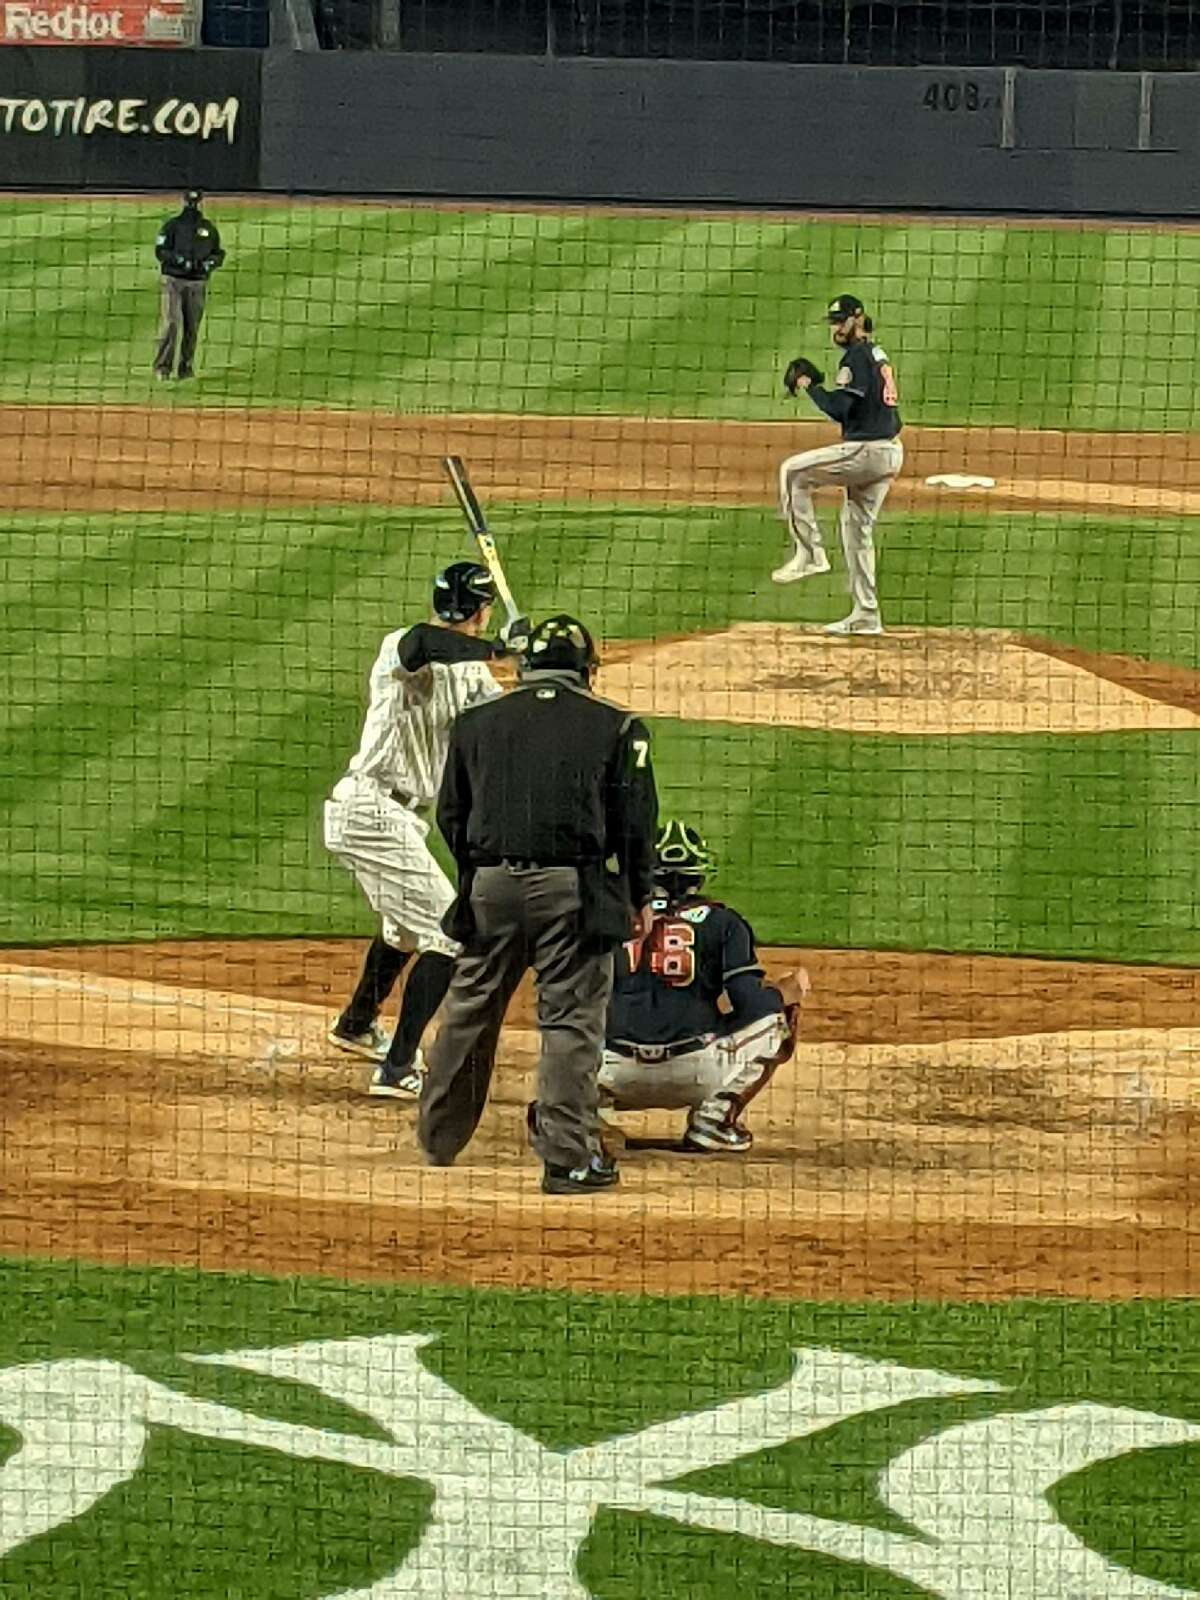 Shenendehowa baseball coach Greg Christodulu, who coached Ian Anderson in high school, had a great view of his former pitcher beating the Yankees on April 21, 2021. (Greg Christodulu)